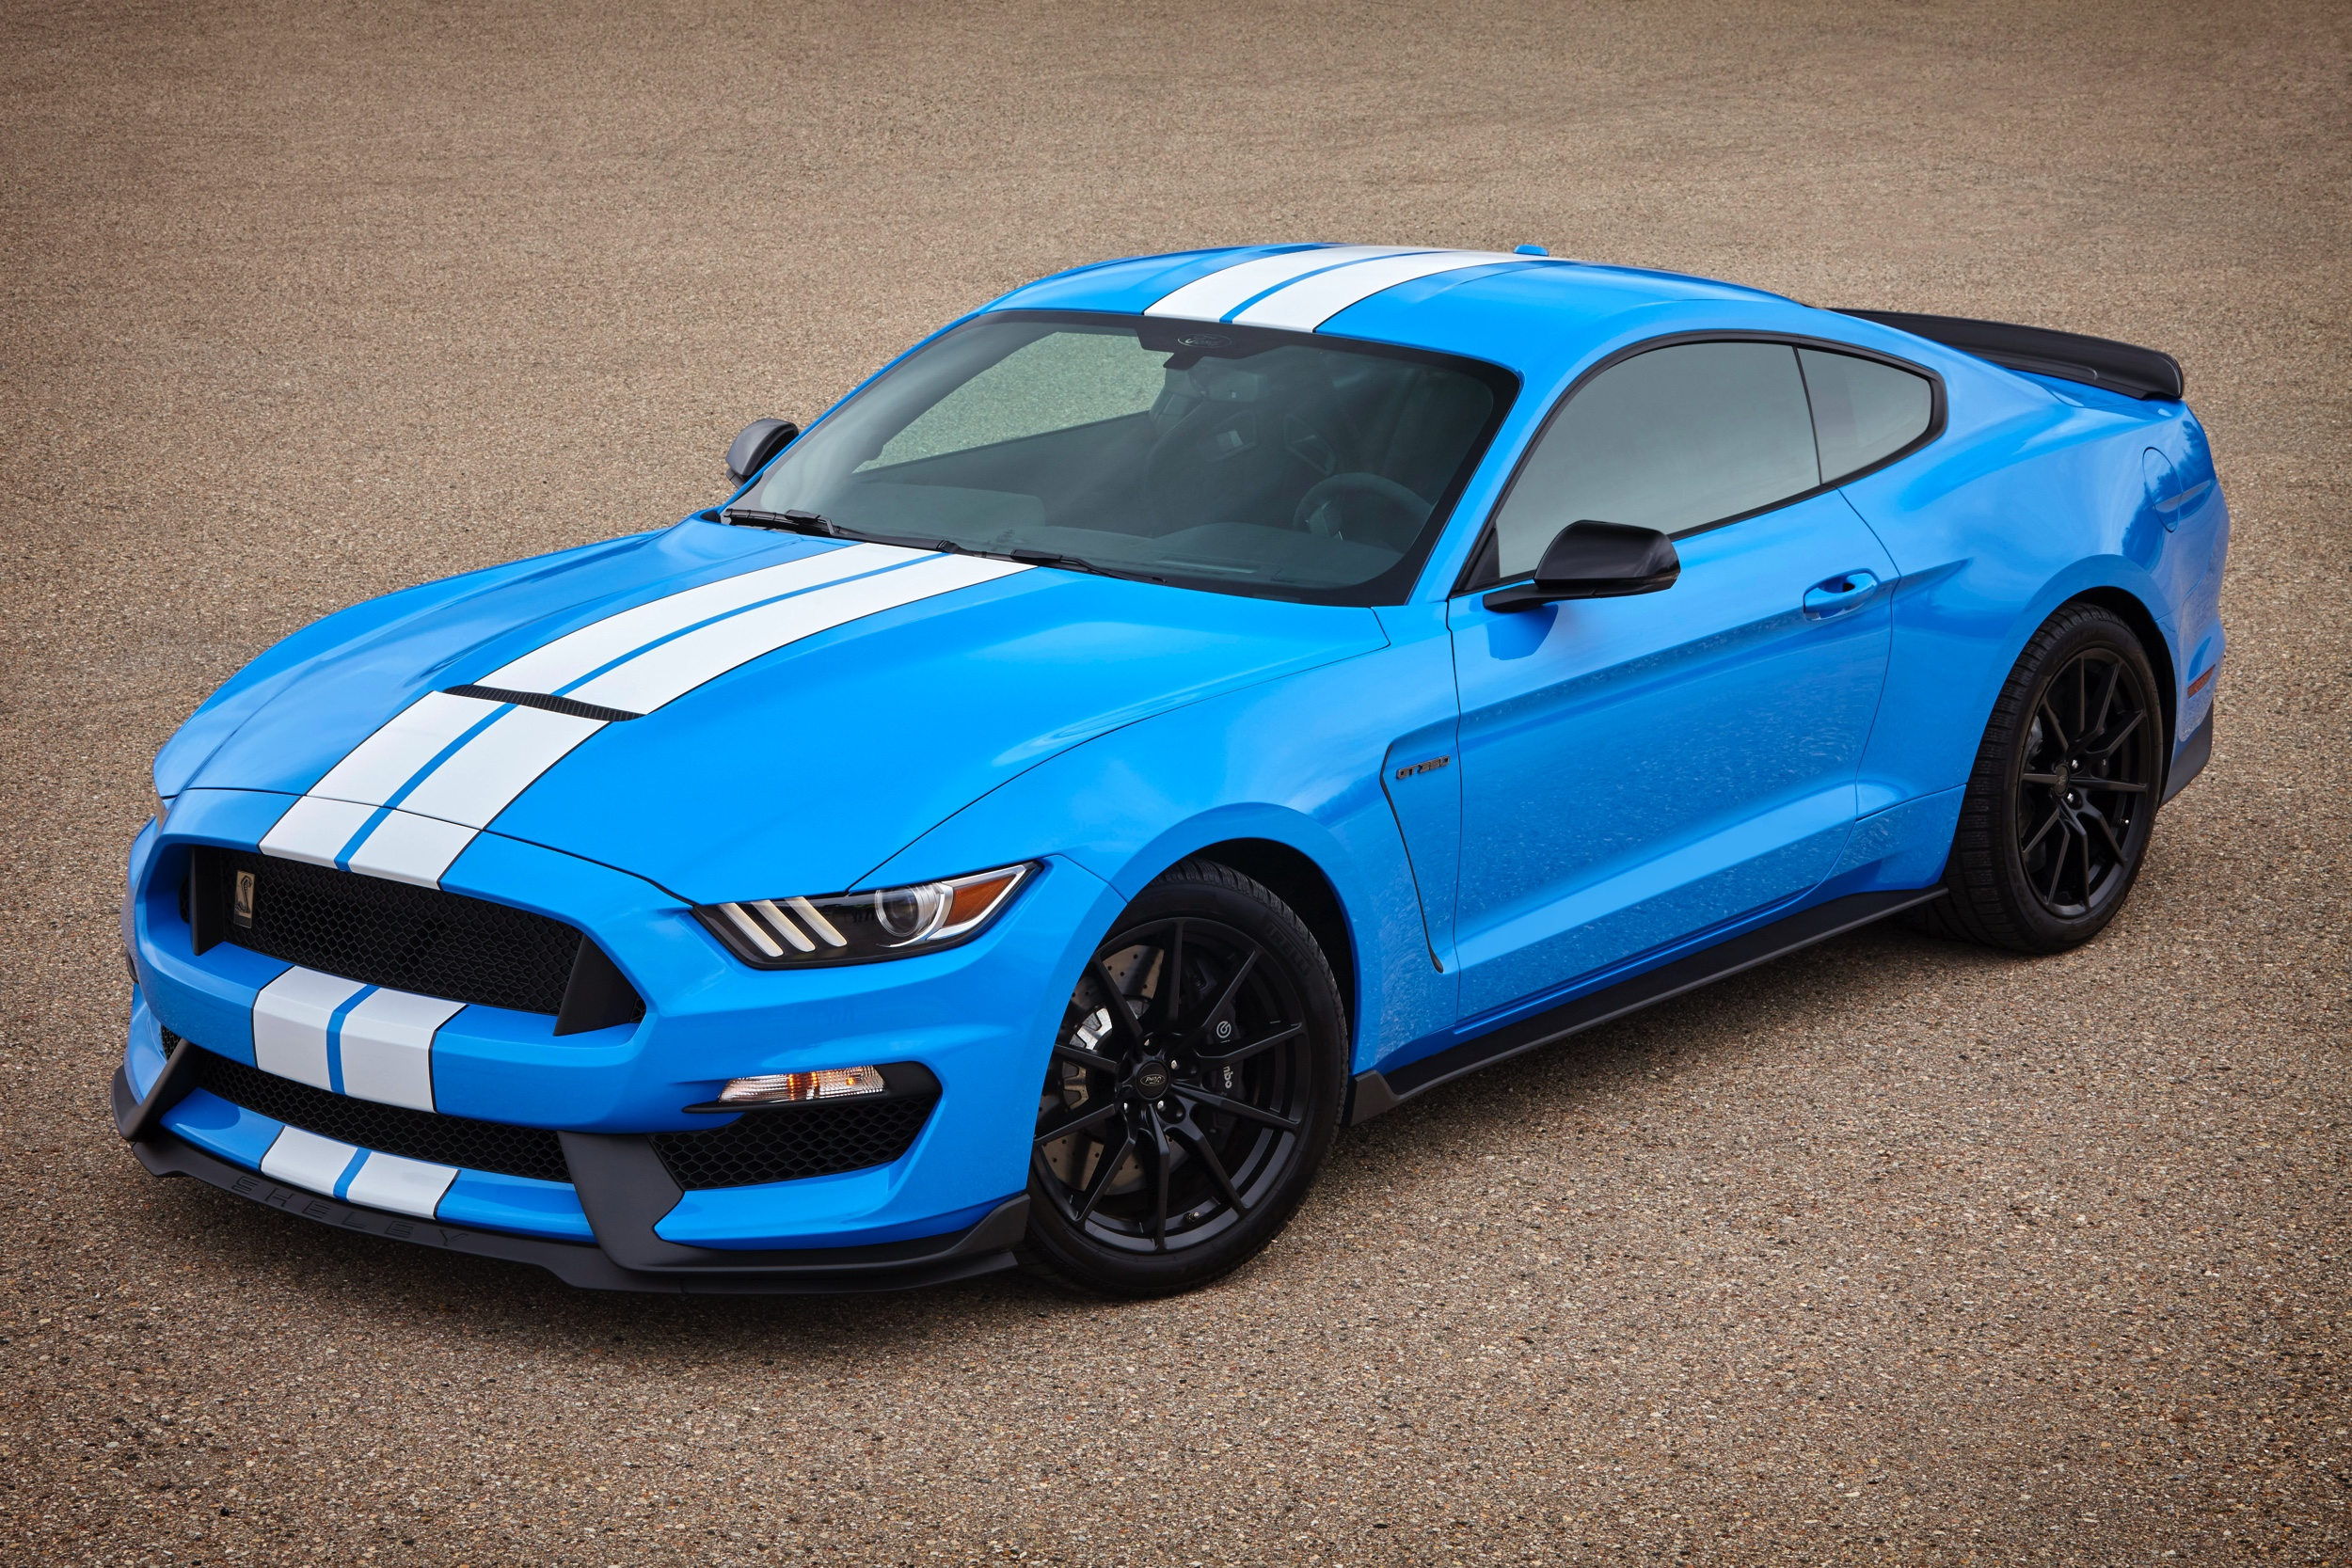 Ford Mustang - Autovisie.nl -1